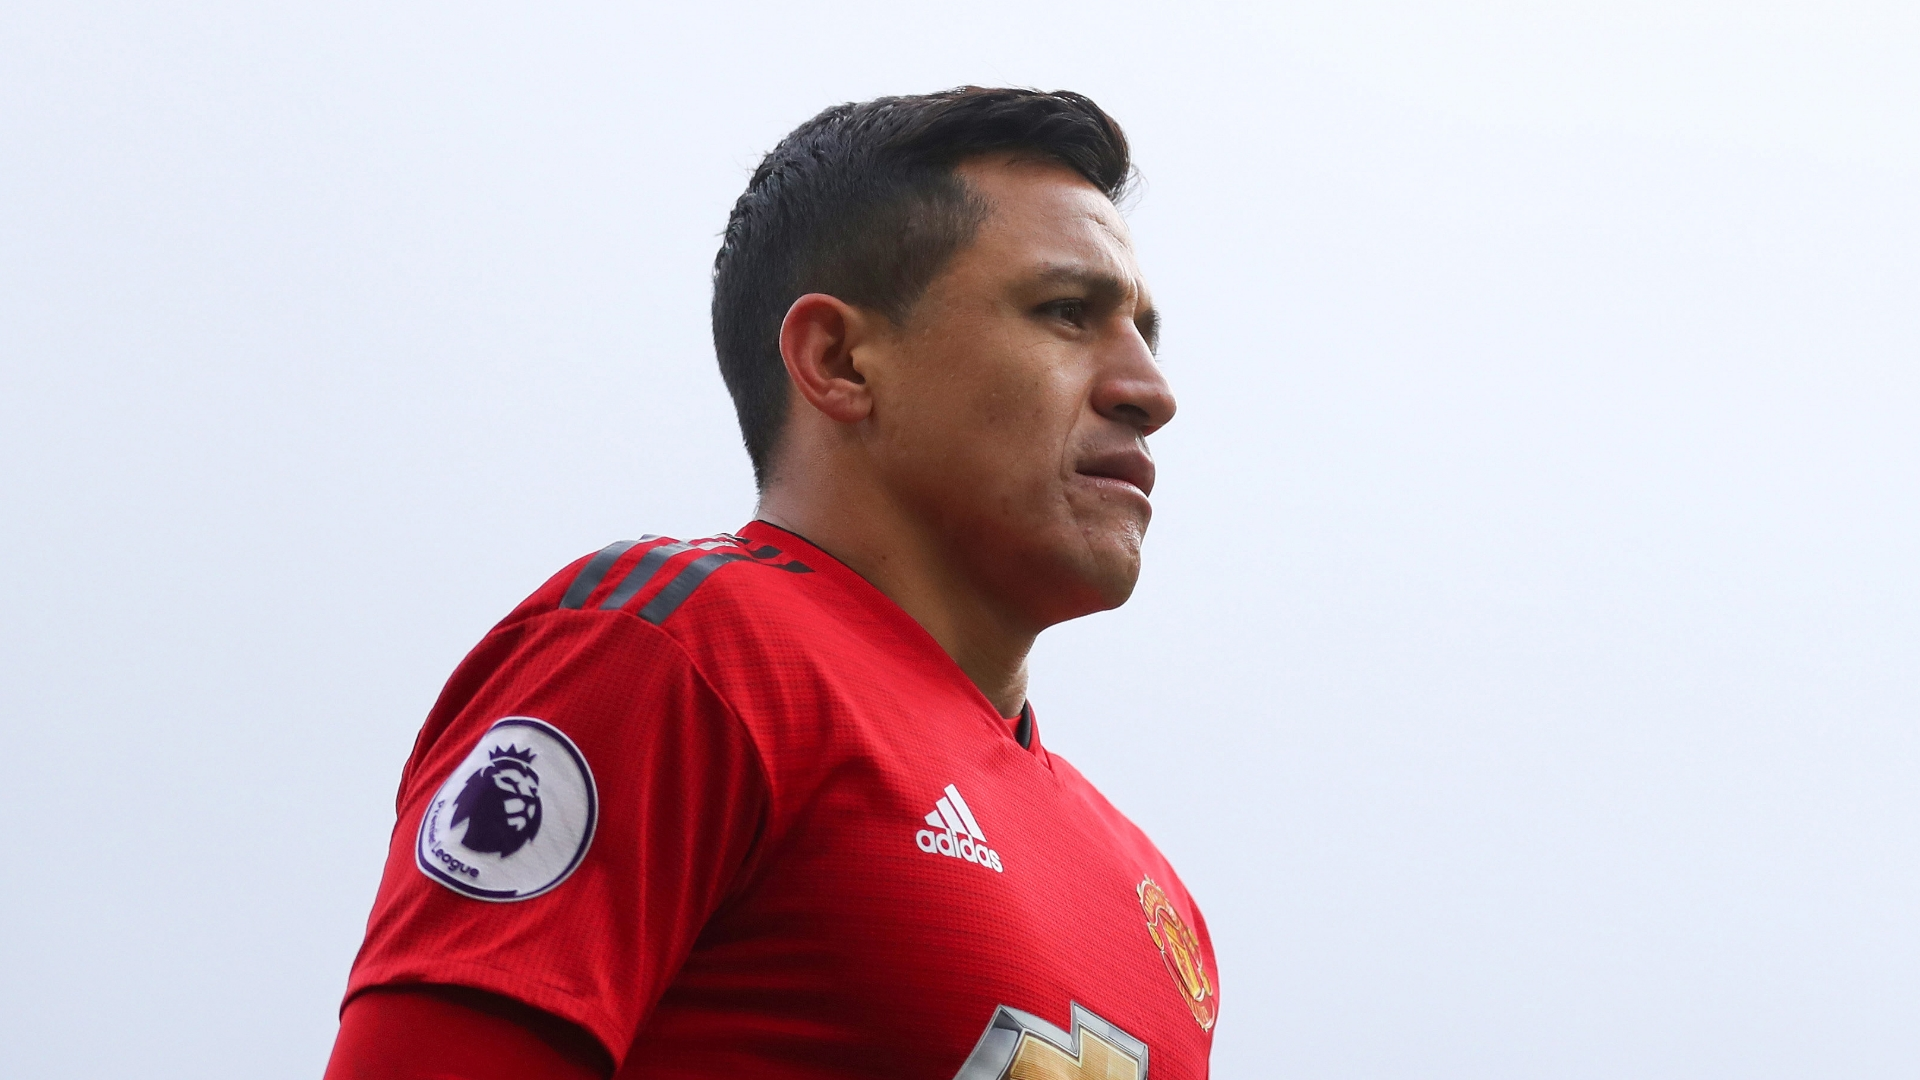 'Man Utd won't spend £70m on Alexis Sanchez replacement' – Chilean can rediscover Arsenal form, says Merson